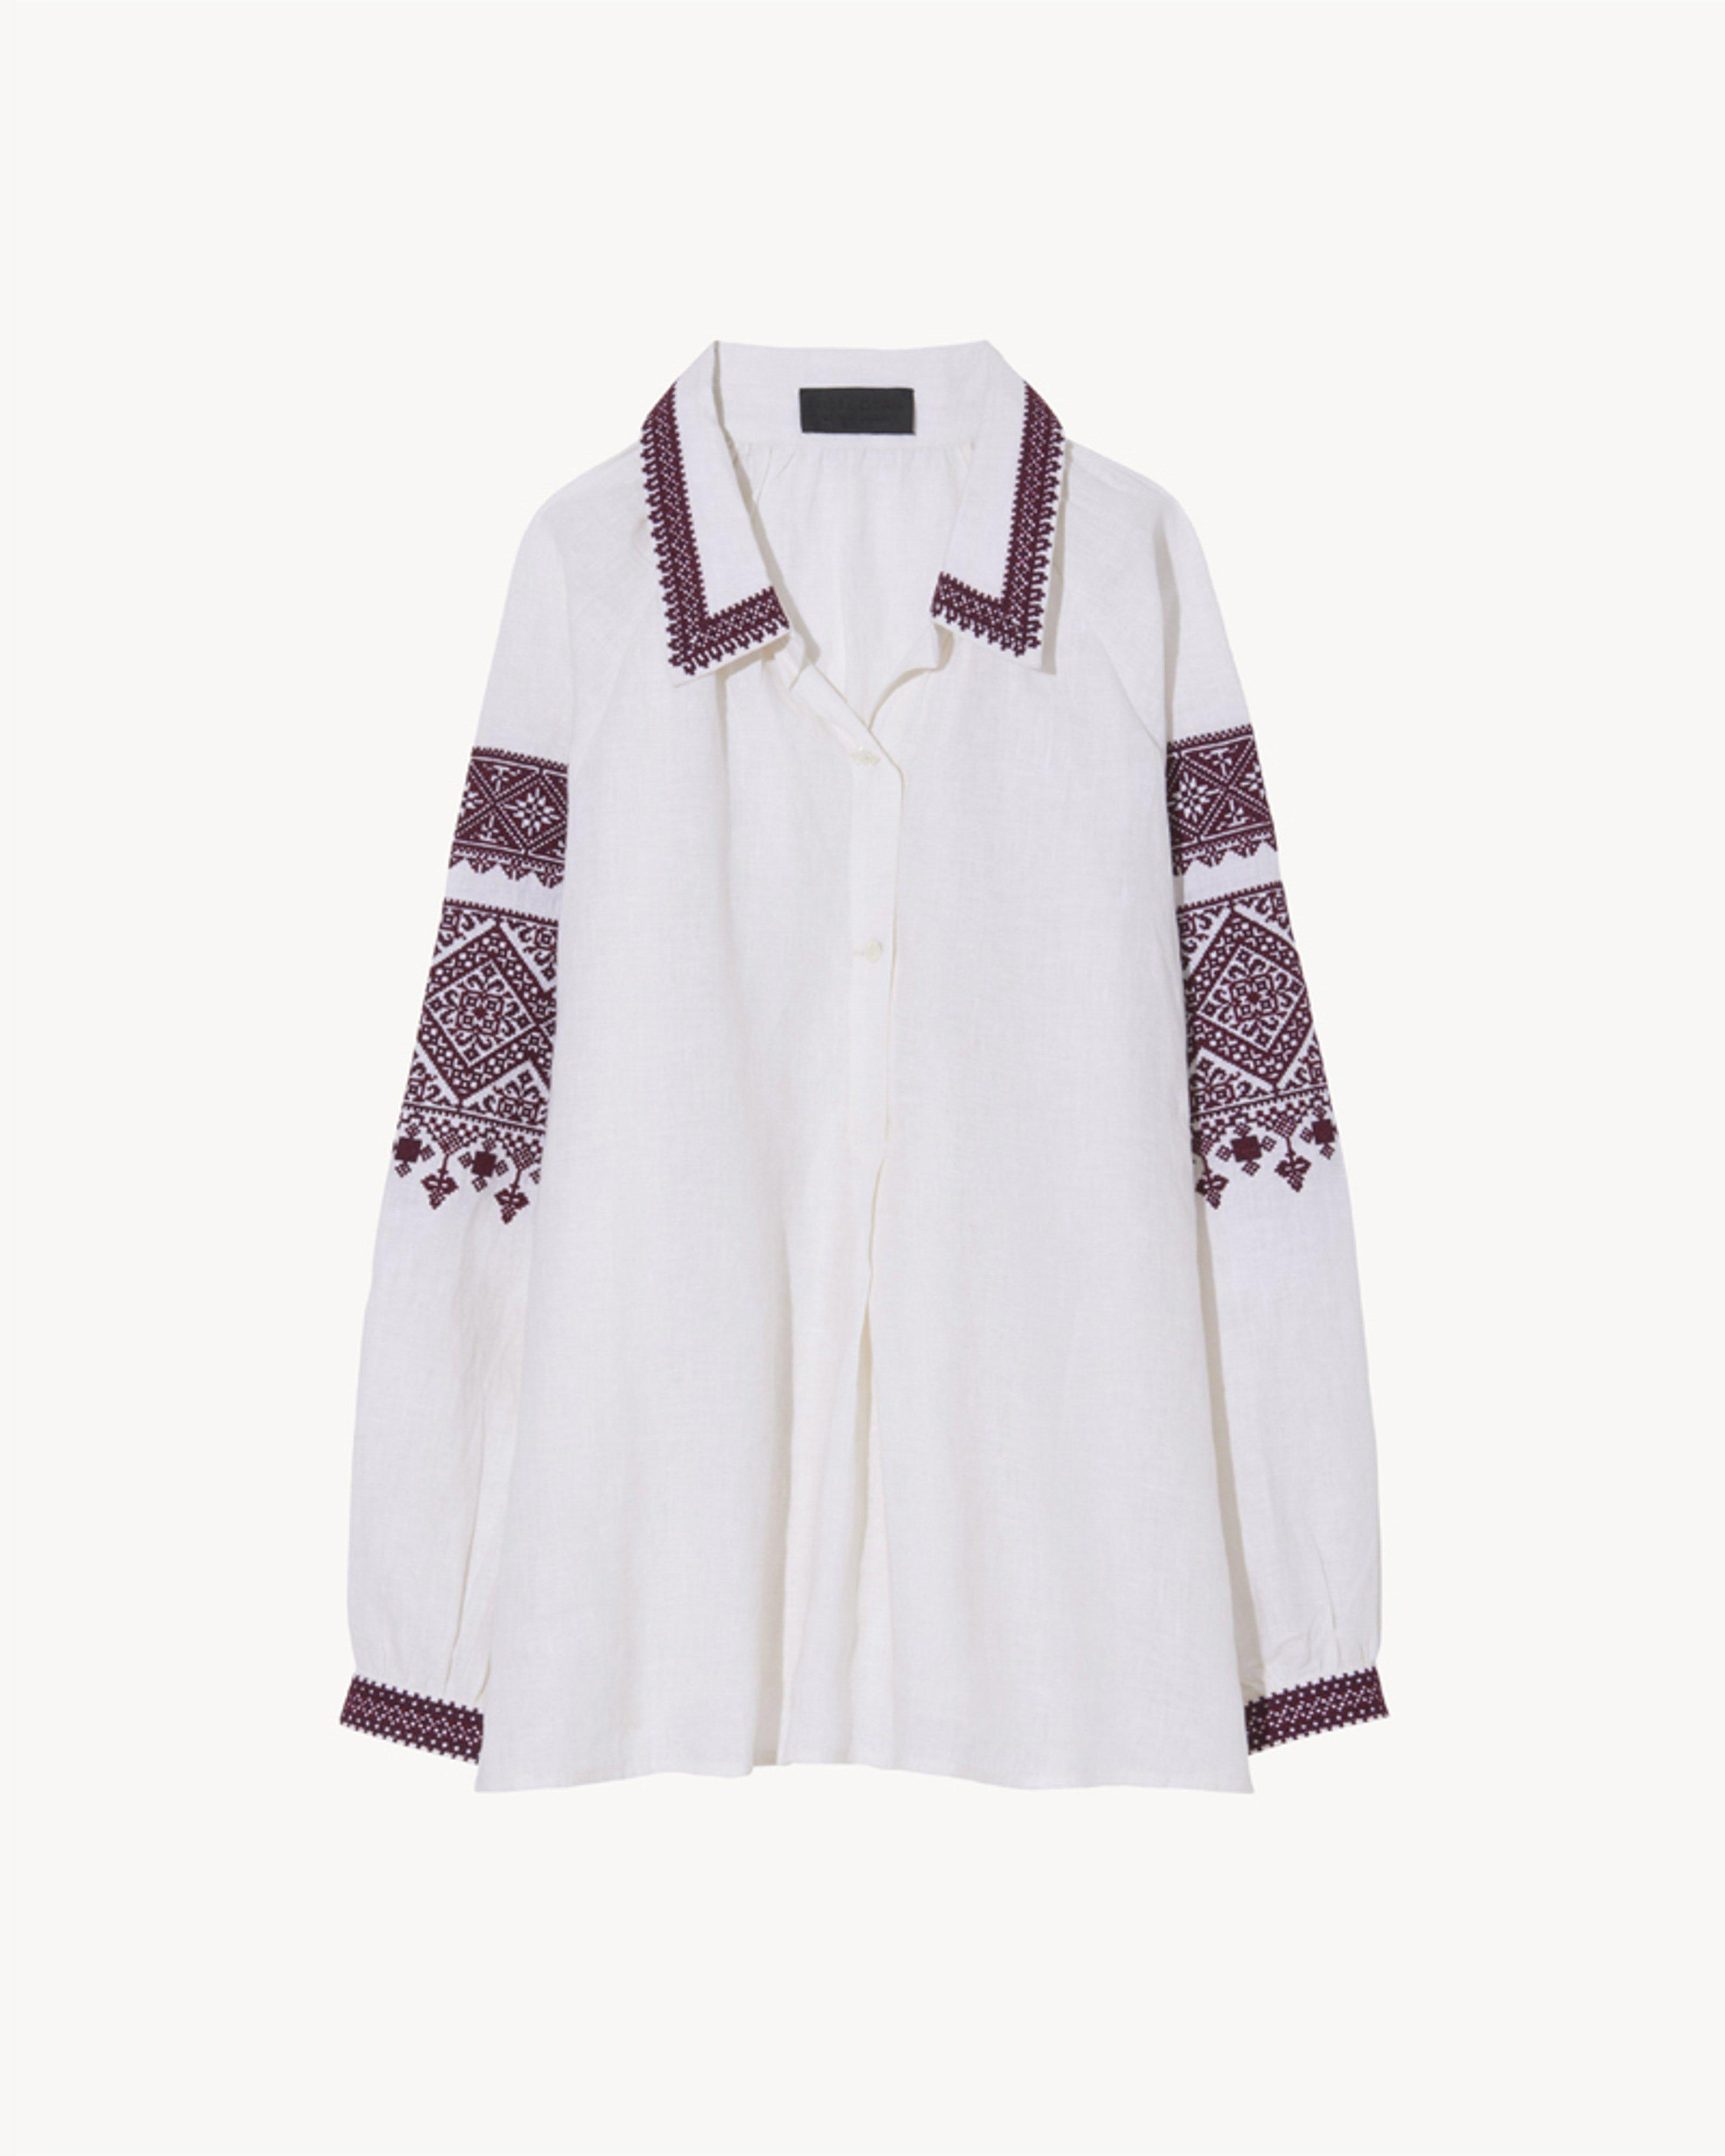 JILL EMBROIDERED TOP 1